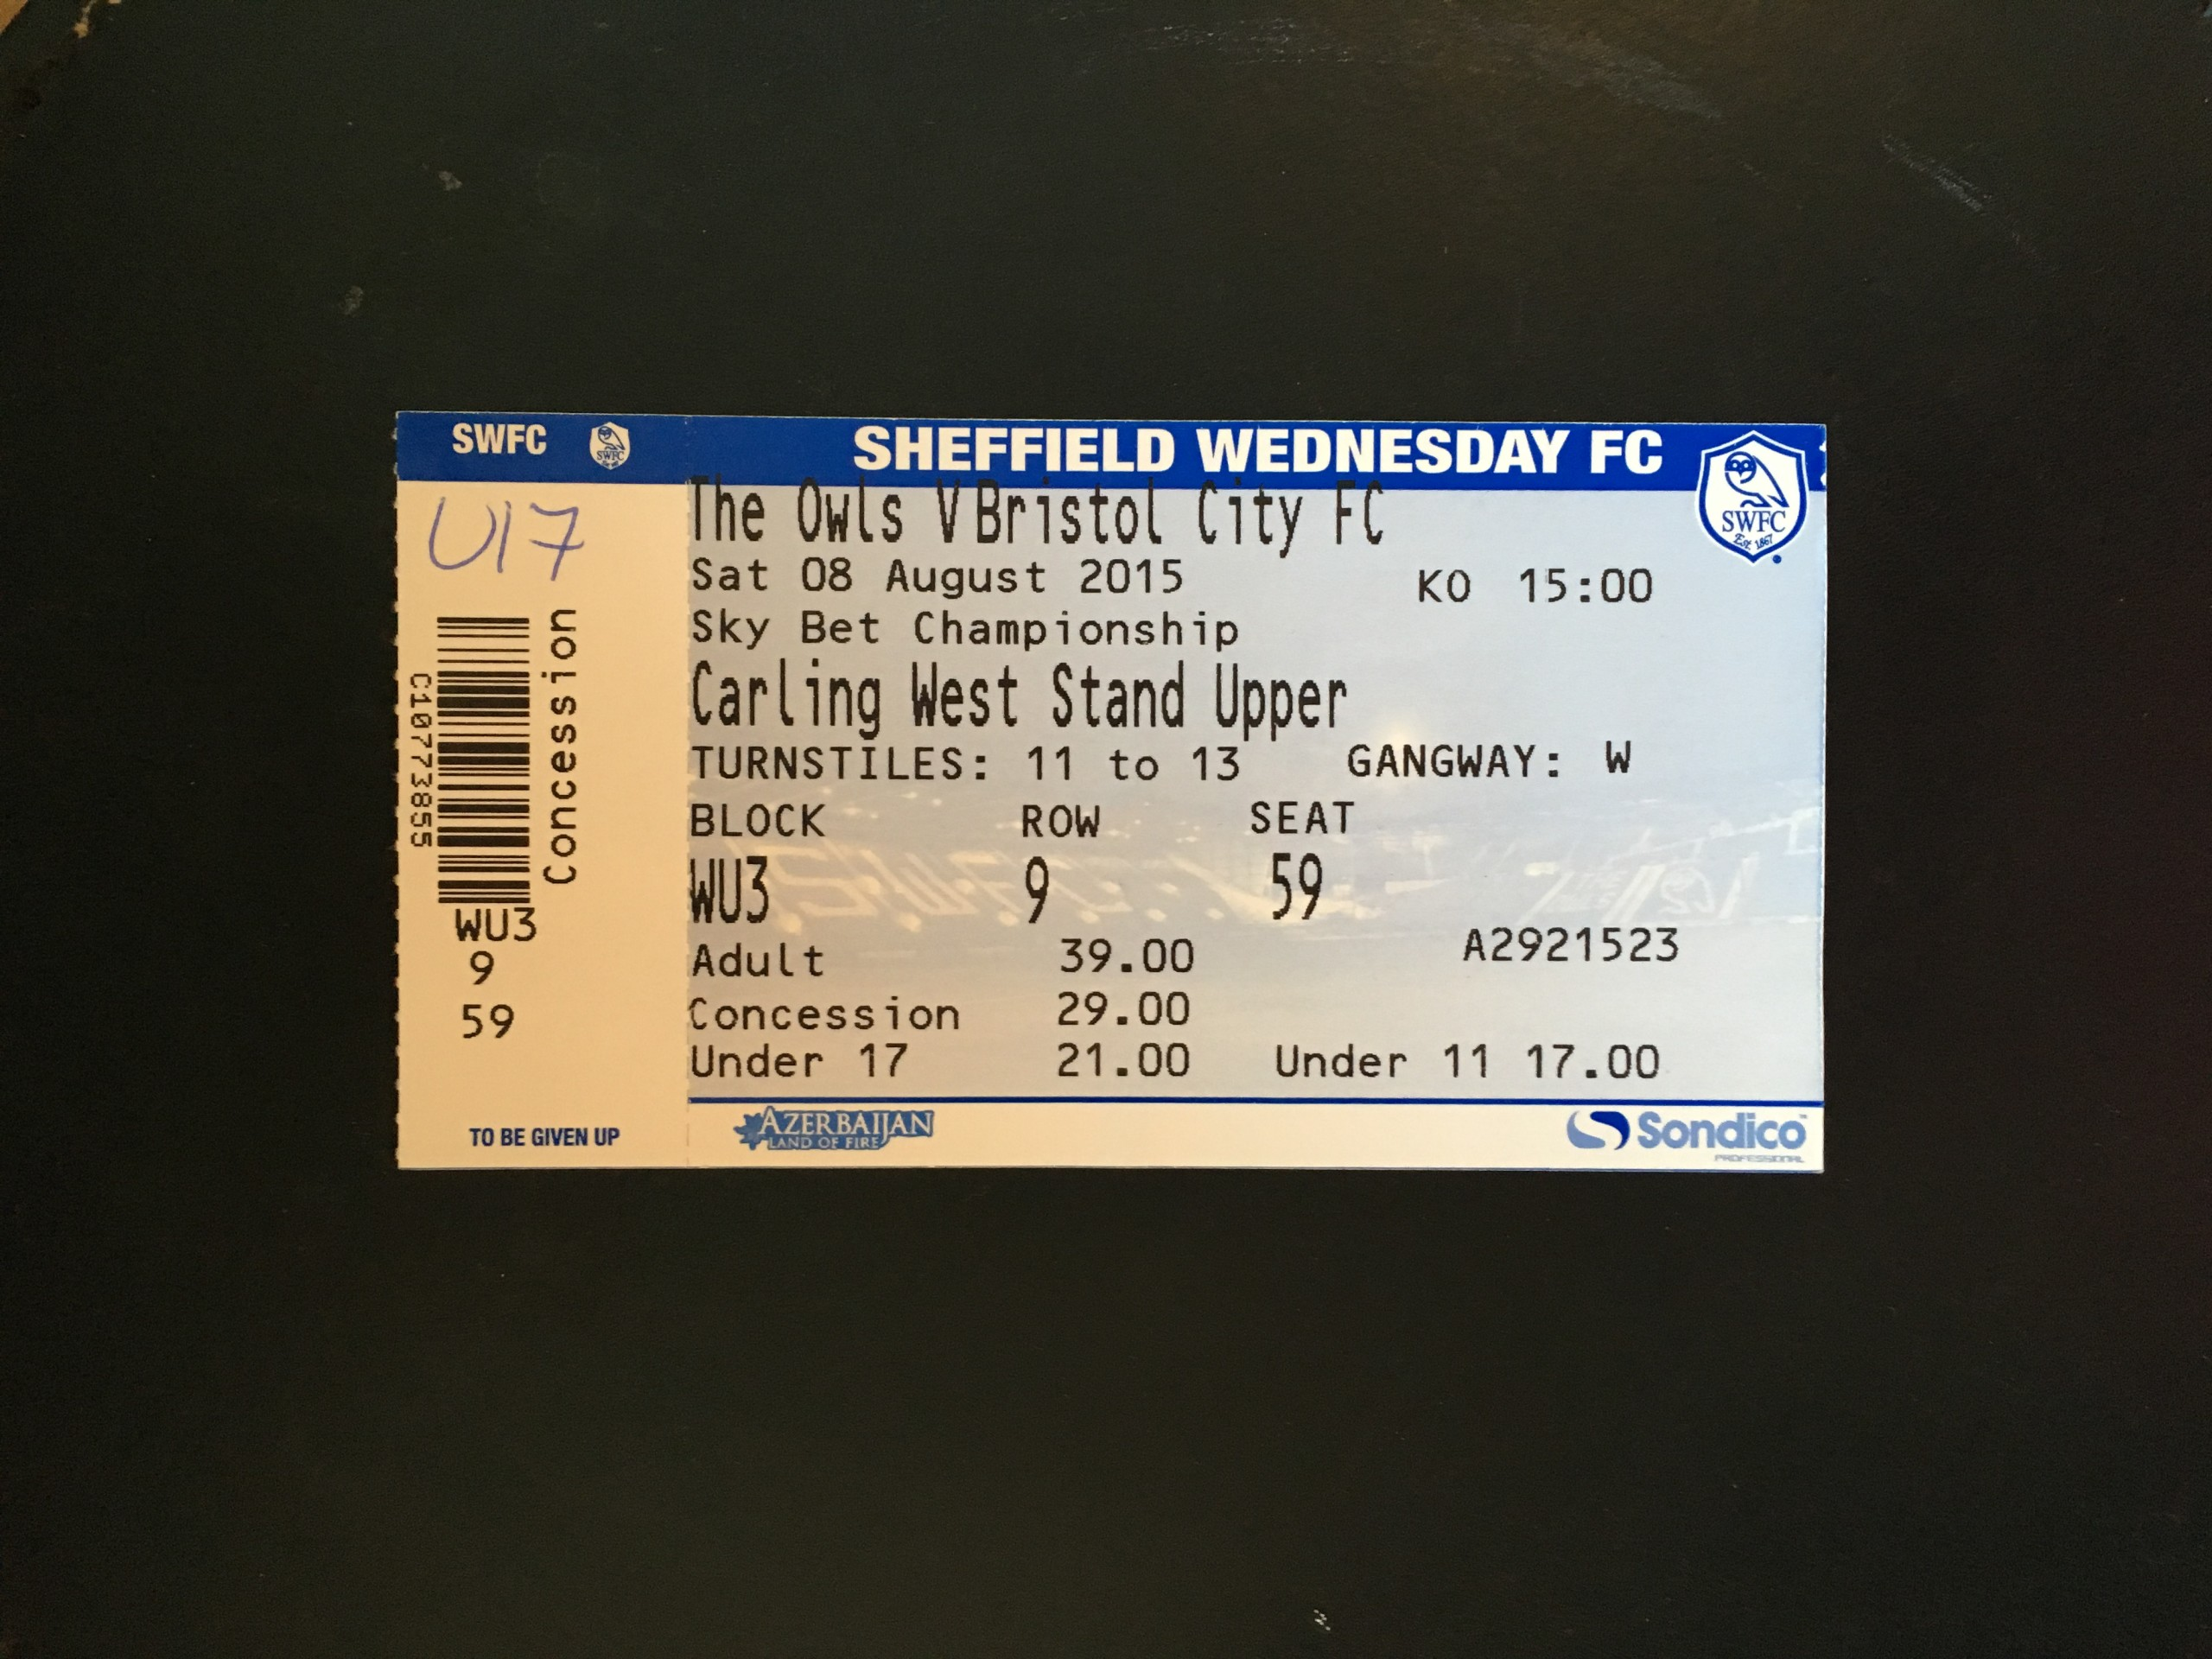 Sheffield Wednesday v Bristol City 08-08-2015 Ticket